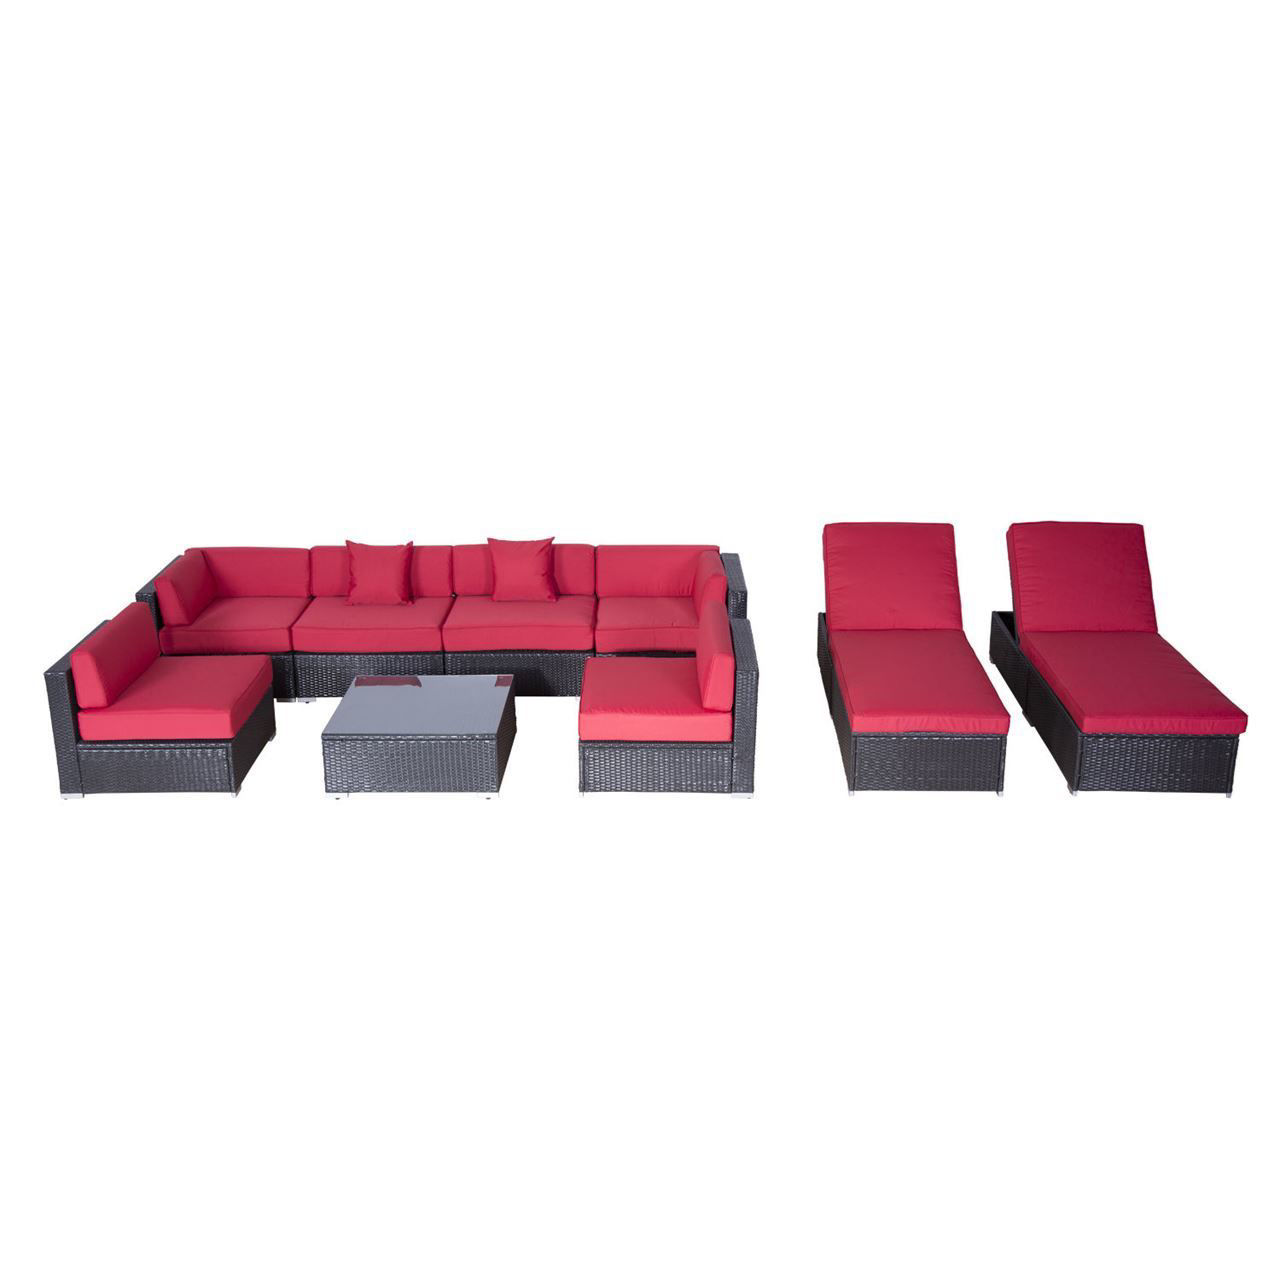 Picture of Outdoor Patio Rattan Wicker Sofa Sectional & Chaise Lounge Furniture Set - Crimson 9 pcs